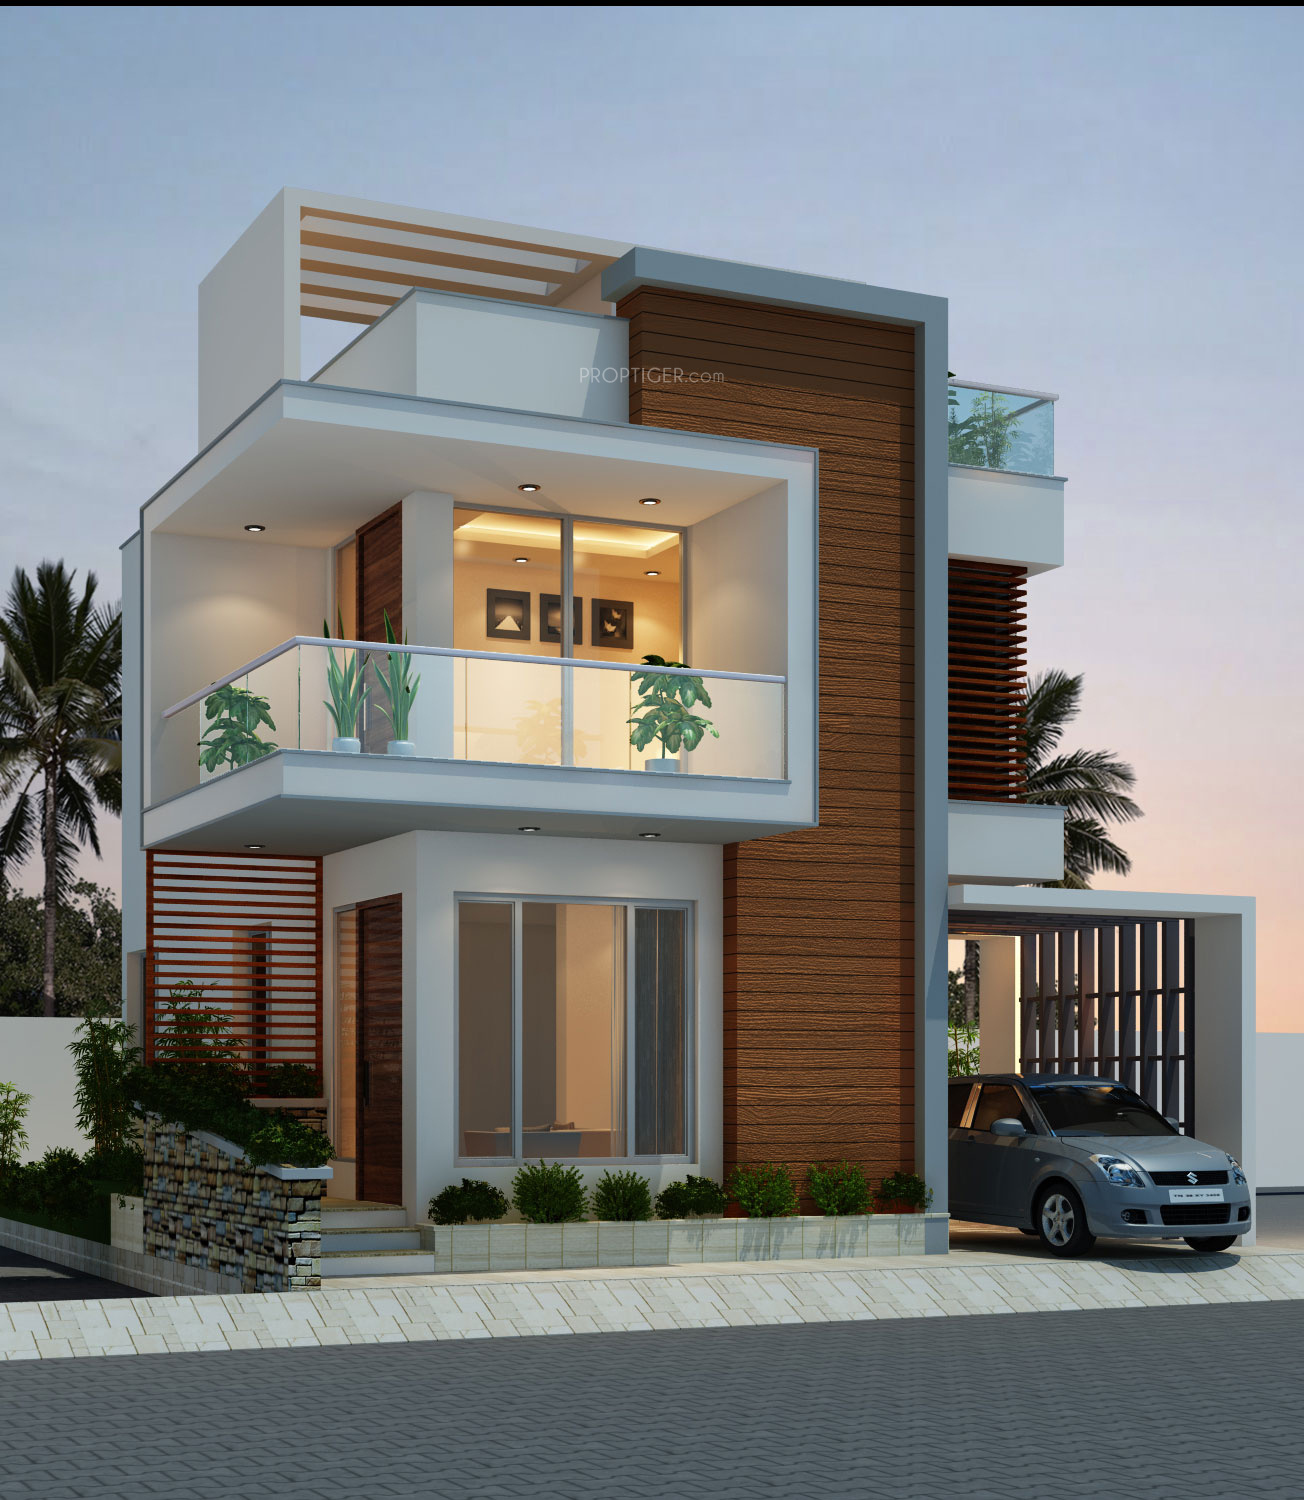 Elevation Woodwork : Headway fortune residency villa in perungalathur chennai